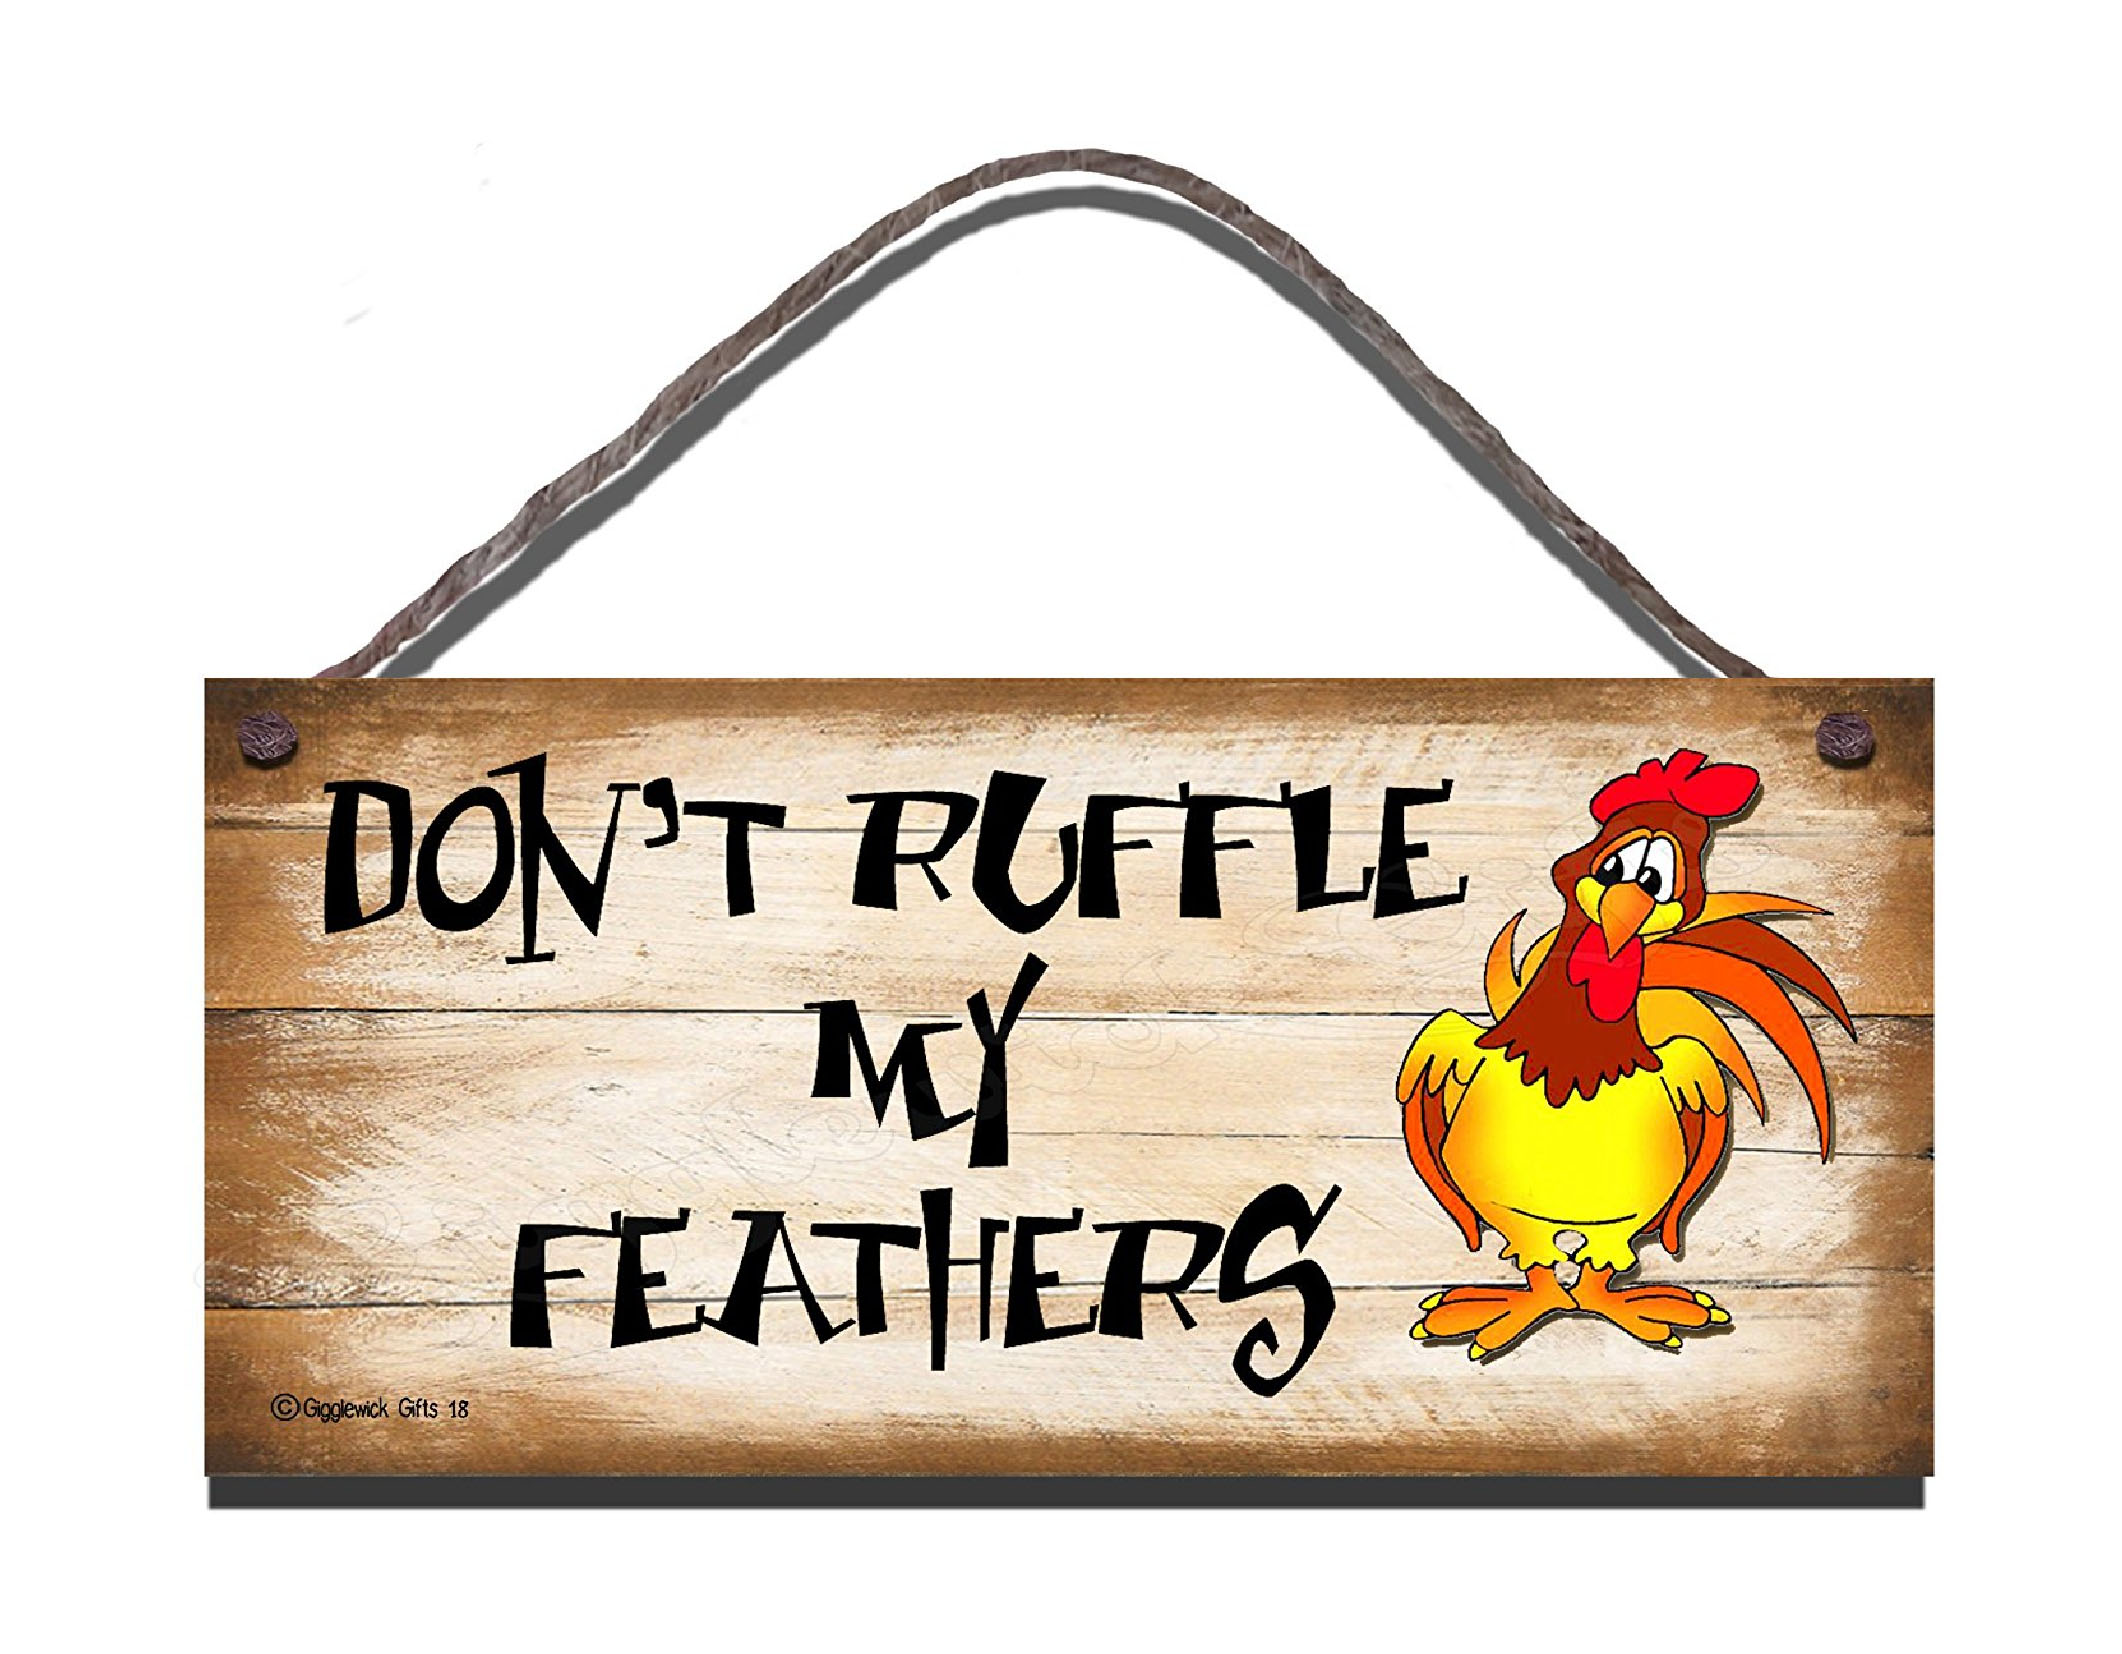 RUFFLE MY FEATHERS S18